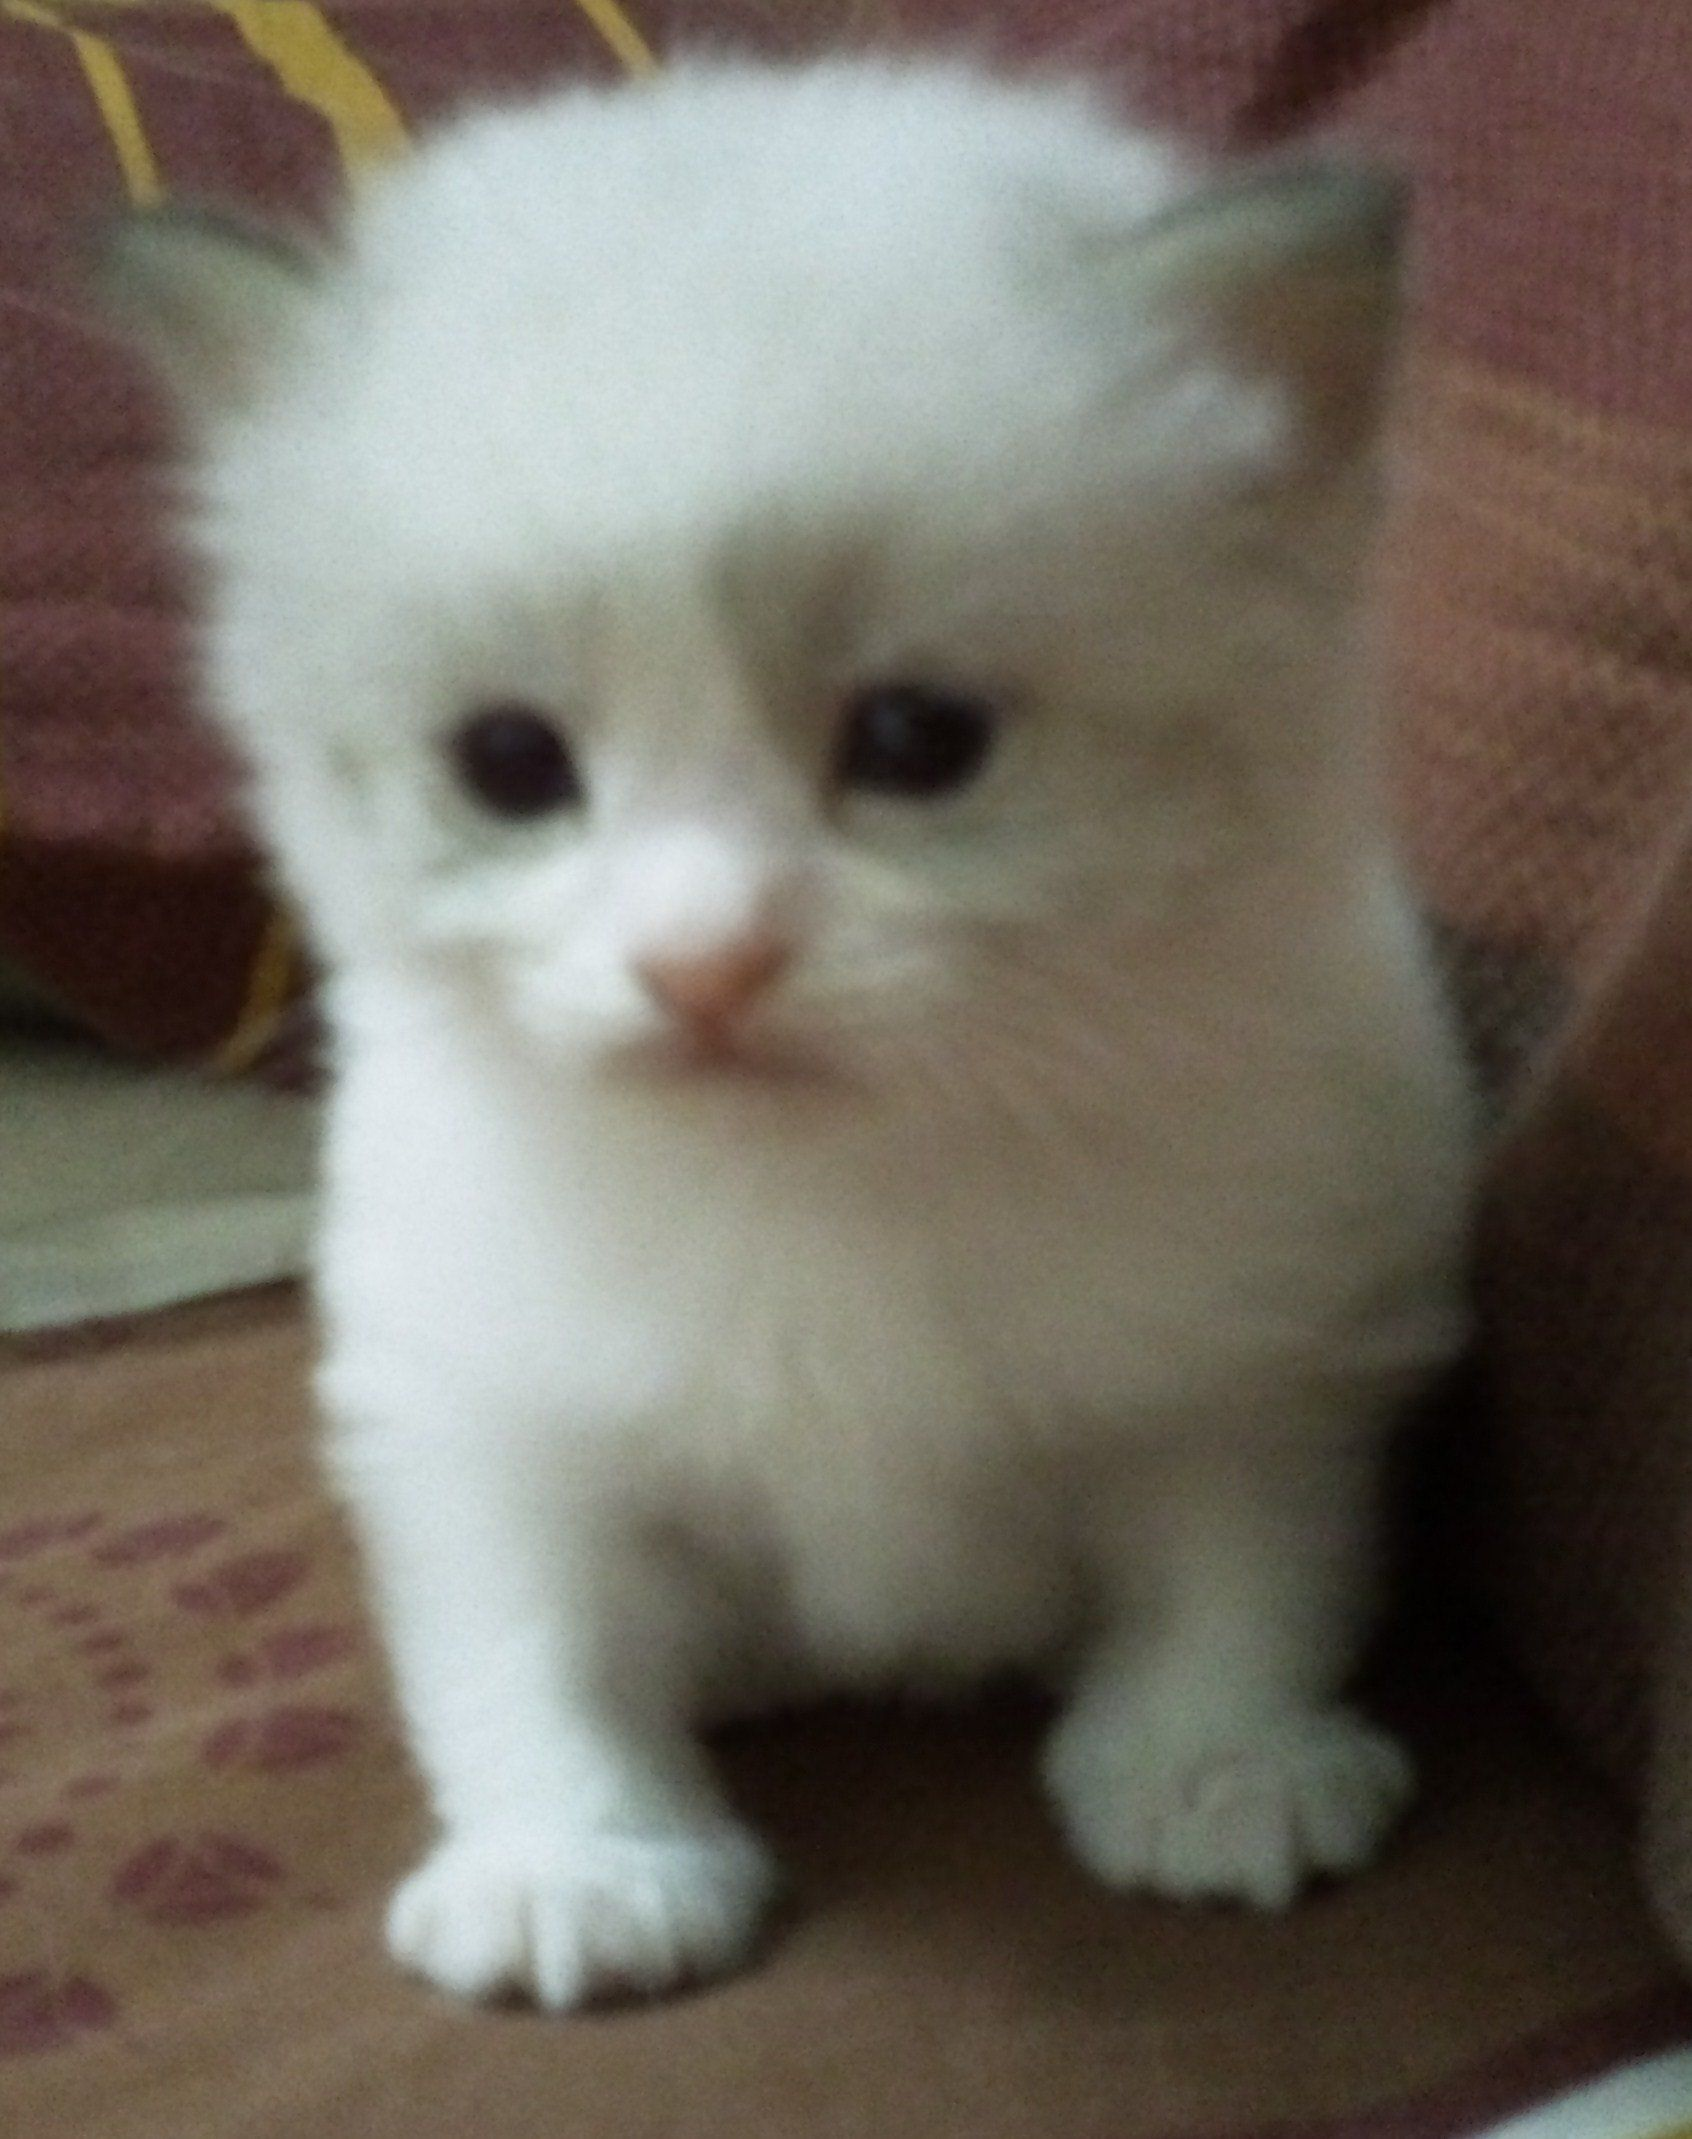 FOR SALE ADOPTION Purebred ragamuffin kittens for sale to good